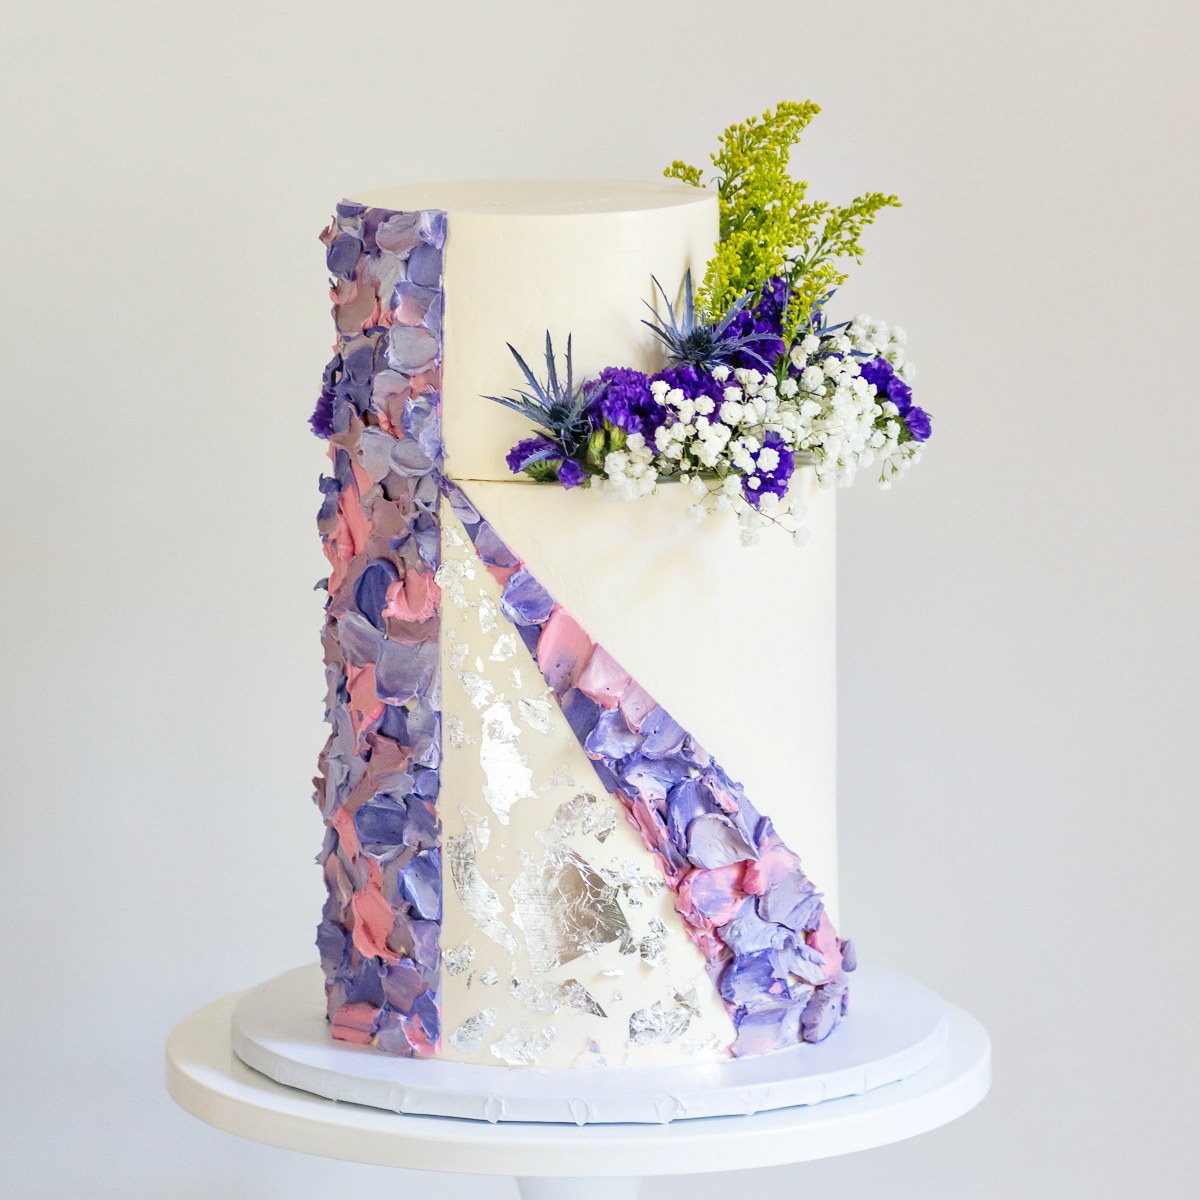 Purple Geometric textured Buttercream with silver leaf and fresh flowers